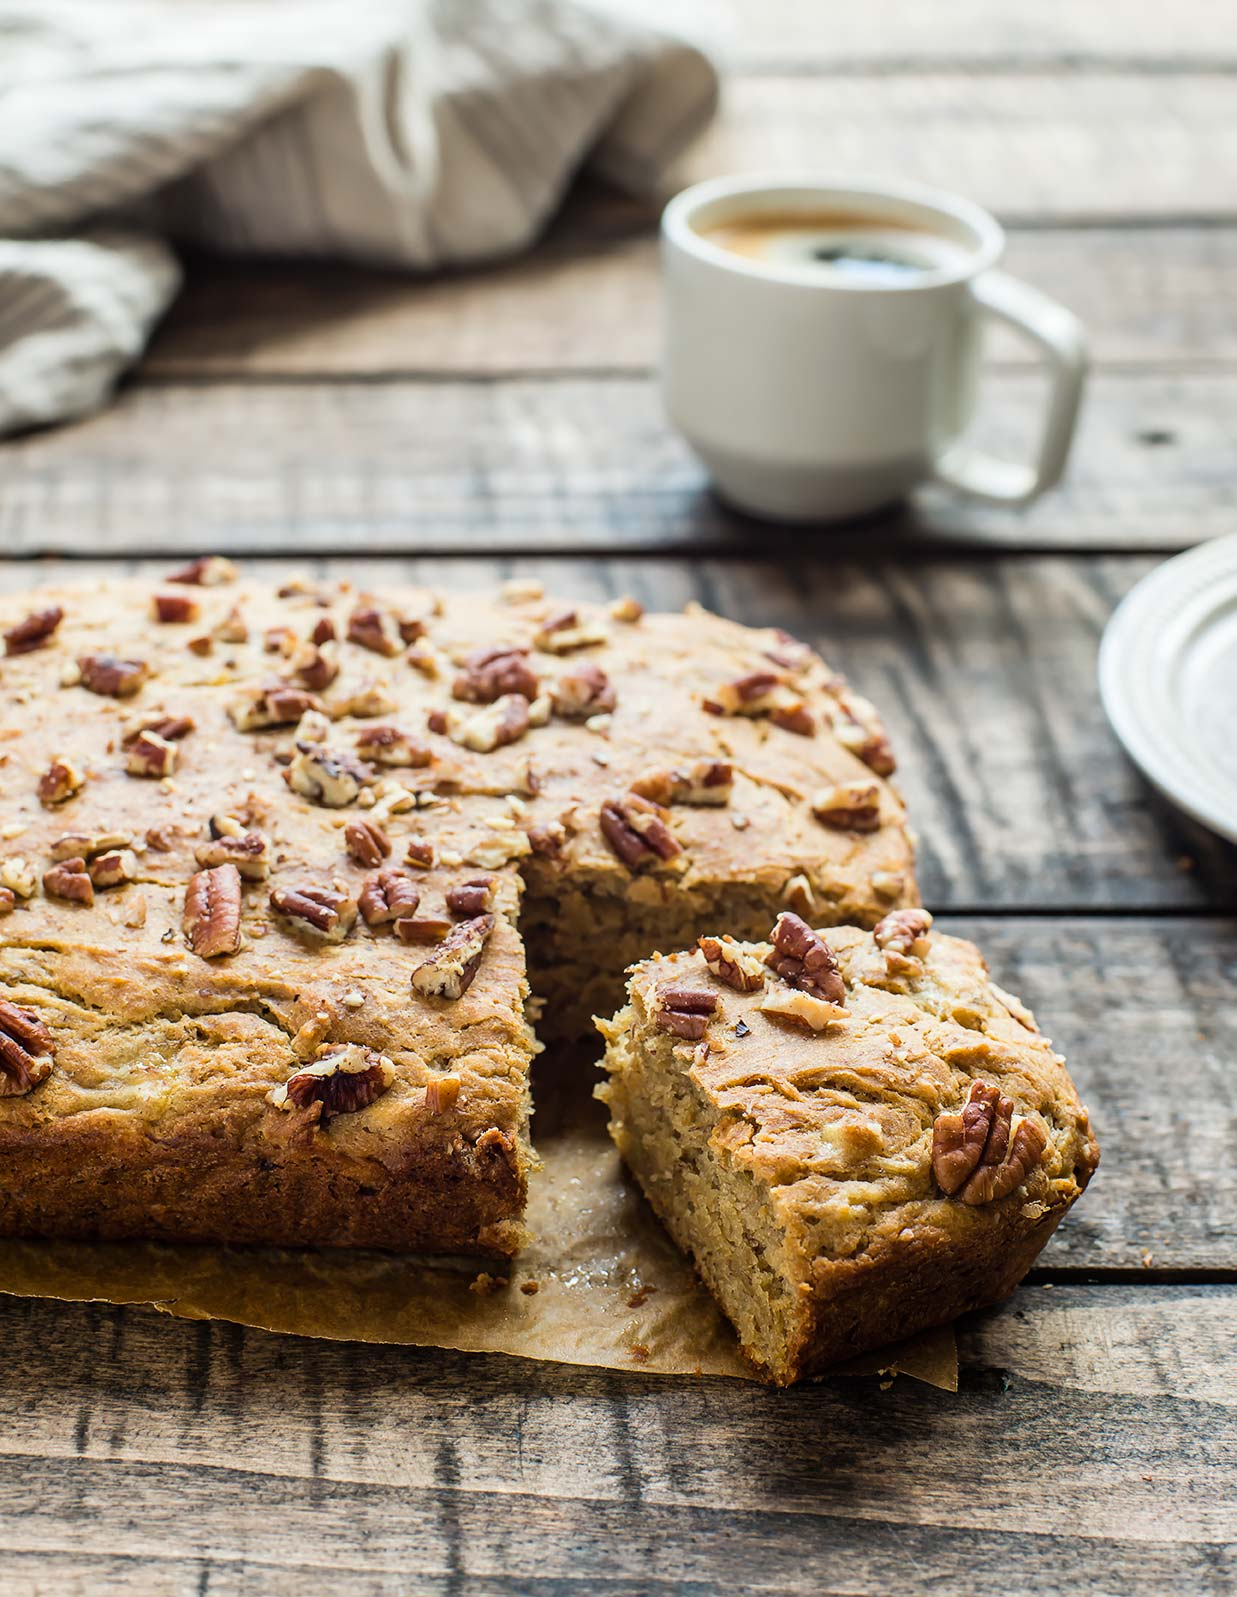 Gluten-Free Banana Nut Snacking Cake